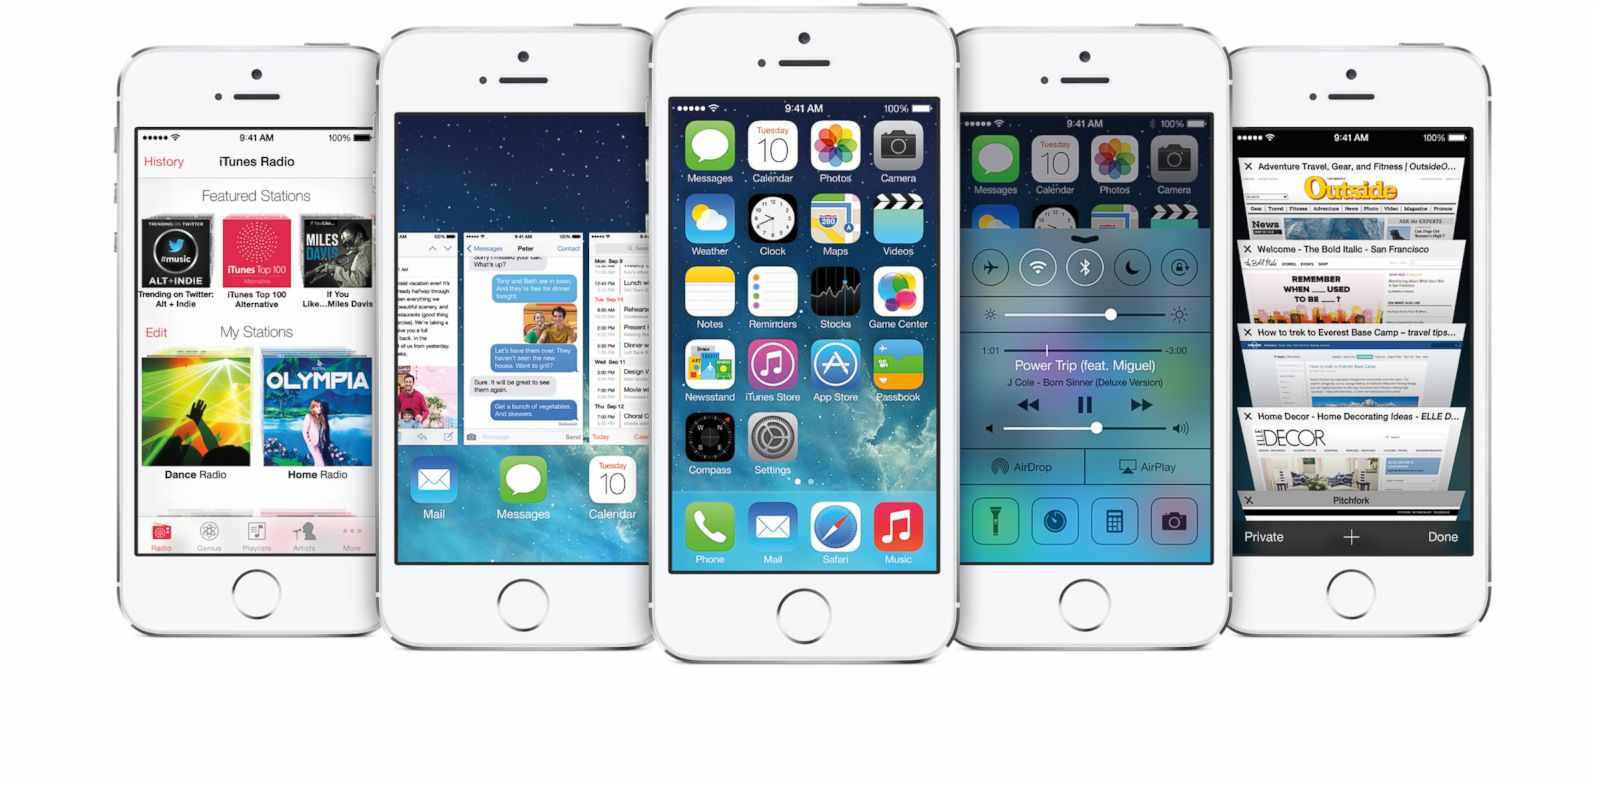 PHOTO: The iPhone 5S, showing various design features of iOS 7.